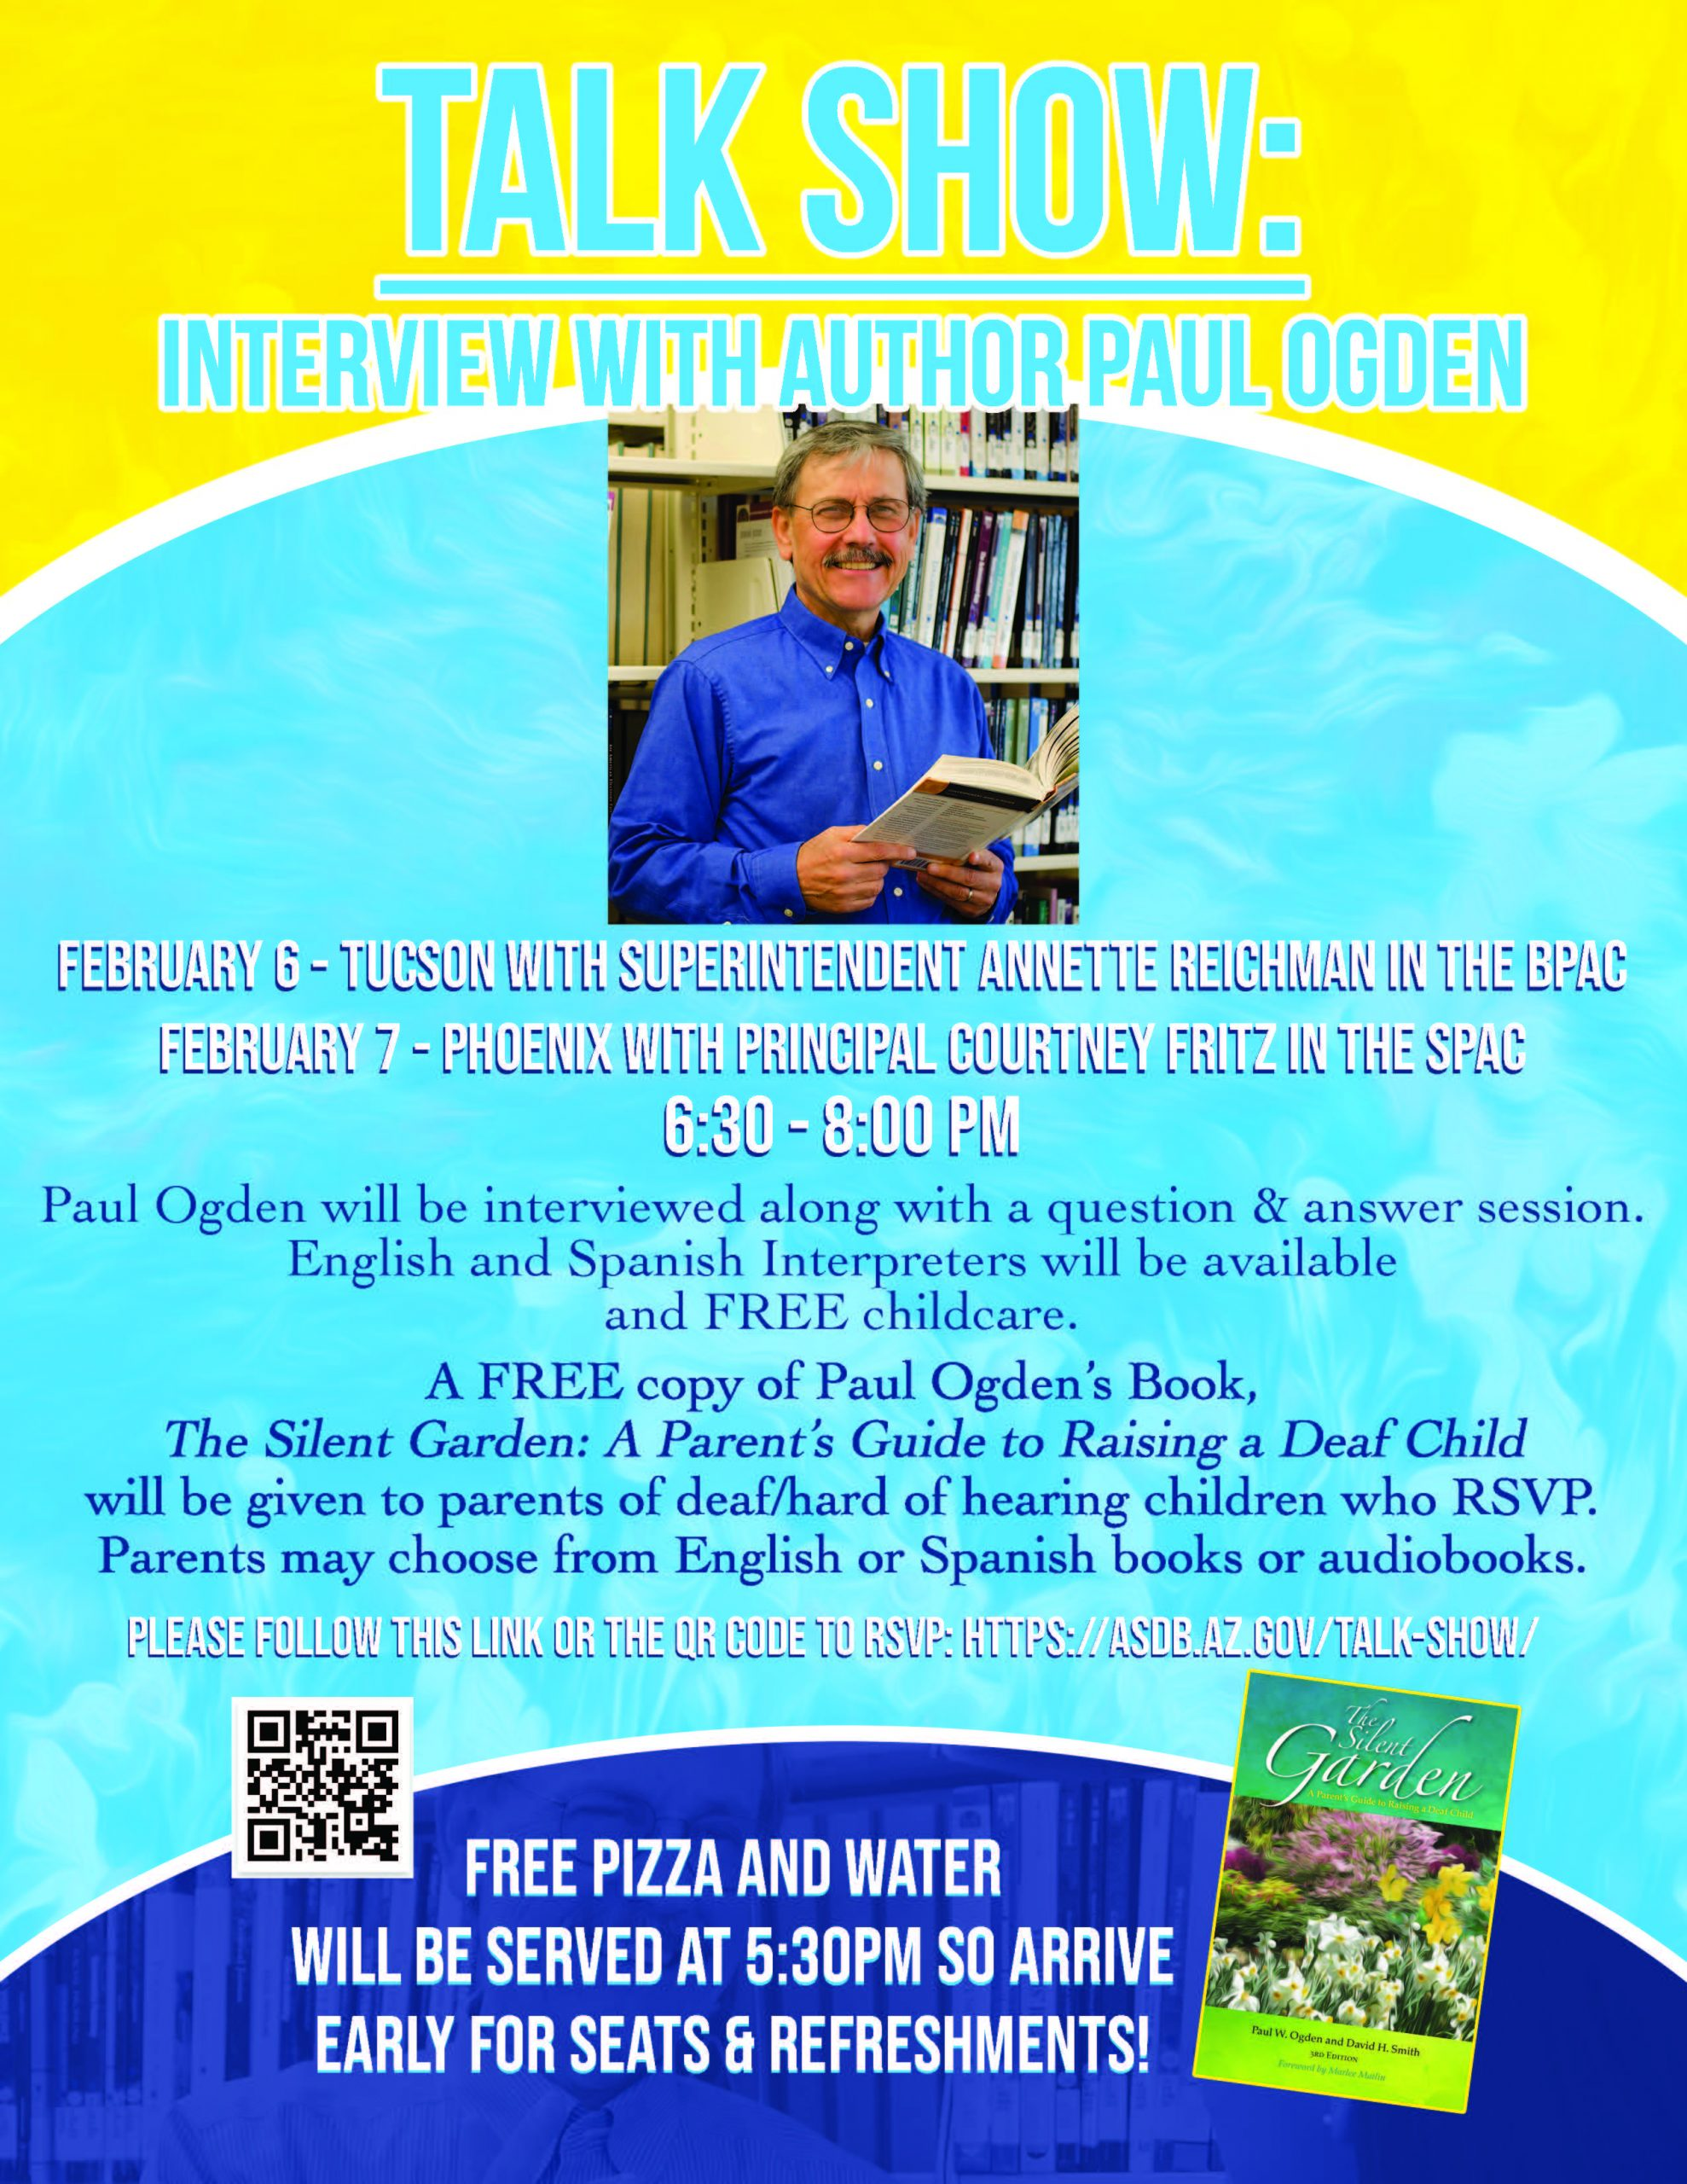 Talk Show: interview with author paul odgen. February 6 - Tucson with superintendent annette reichman in the BPAC from 6:30pm to 8pm. February 7 will be in phoenix with principal courtney fritz in the SPAC, also from 6:30pm to 8pm. Paul Ogden will be interviewed along with a question and answer session. English and Spanish Interpreters will be available and FREE childcare. A FREE copy of Paul Ogden's Book, The Silent Garden: A Parent's Guide to Raising a Deaf Child will be given to parents of deaf/hard of hearing children who RSVP. Parents may choose from English or Spanish books or audiobooks. Please follow this link or the QR code to RSVP: https://asdb.az.gov/talk-show/ Free Pizza and Water will be served at 5:30pm so arrive early for seats and refreshments!